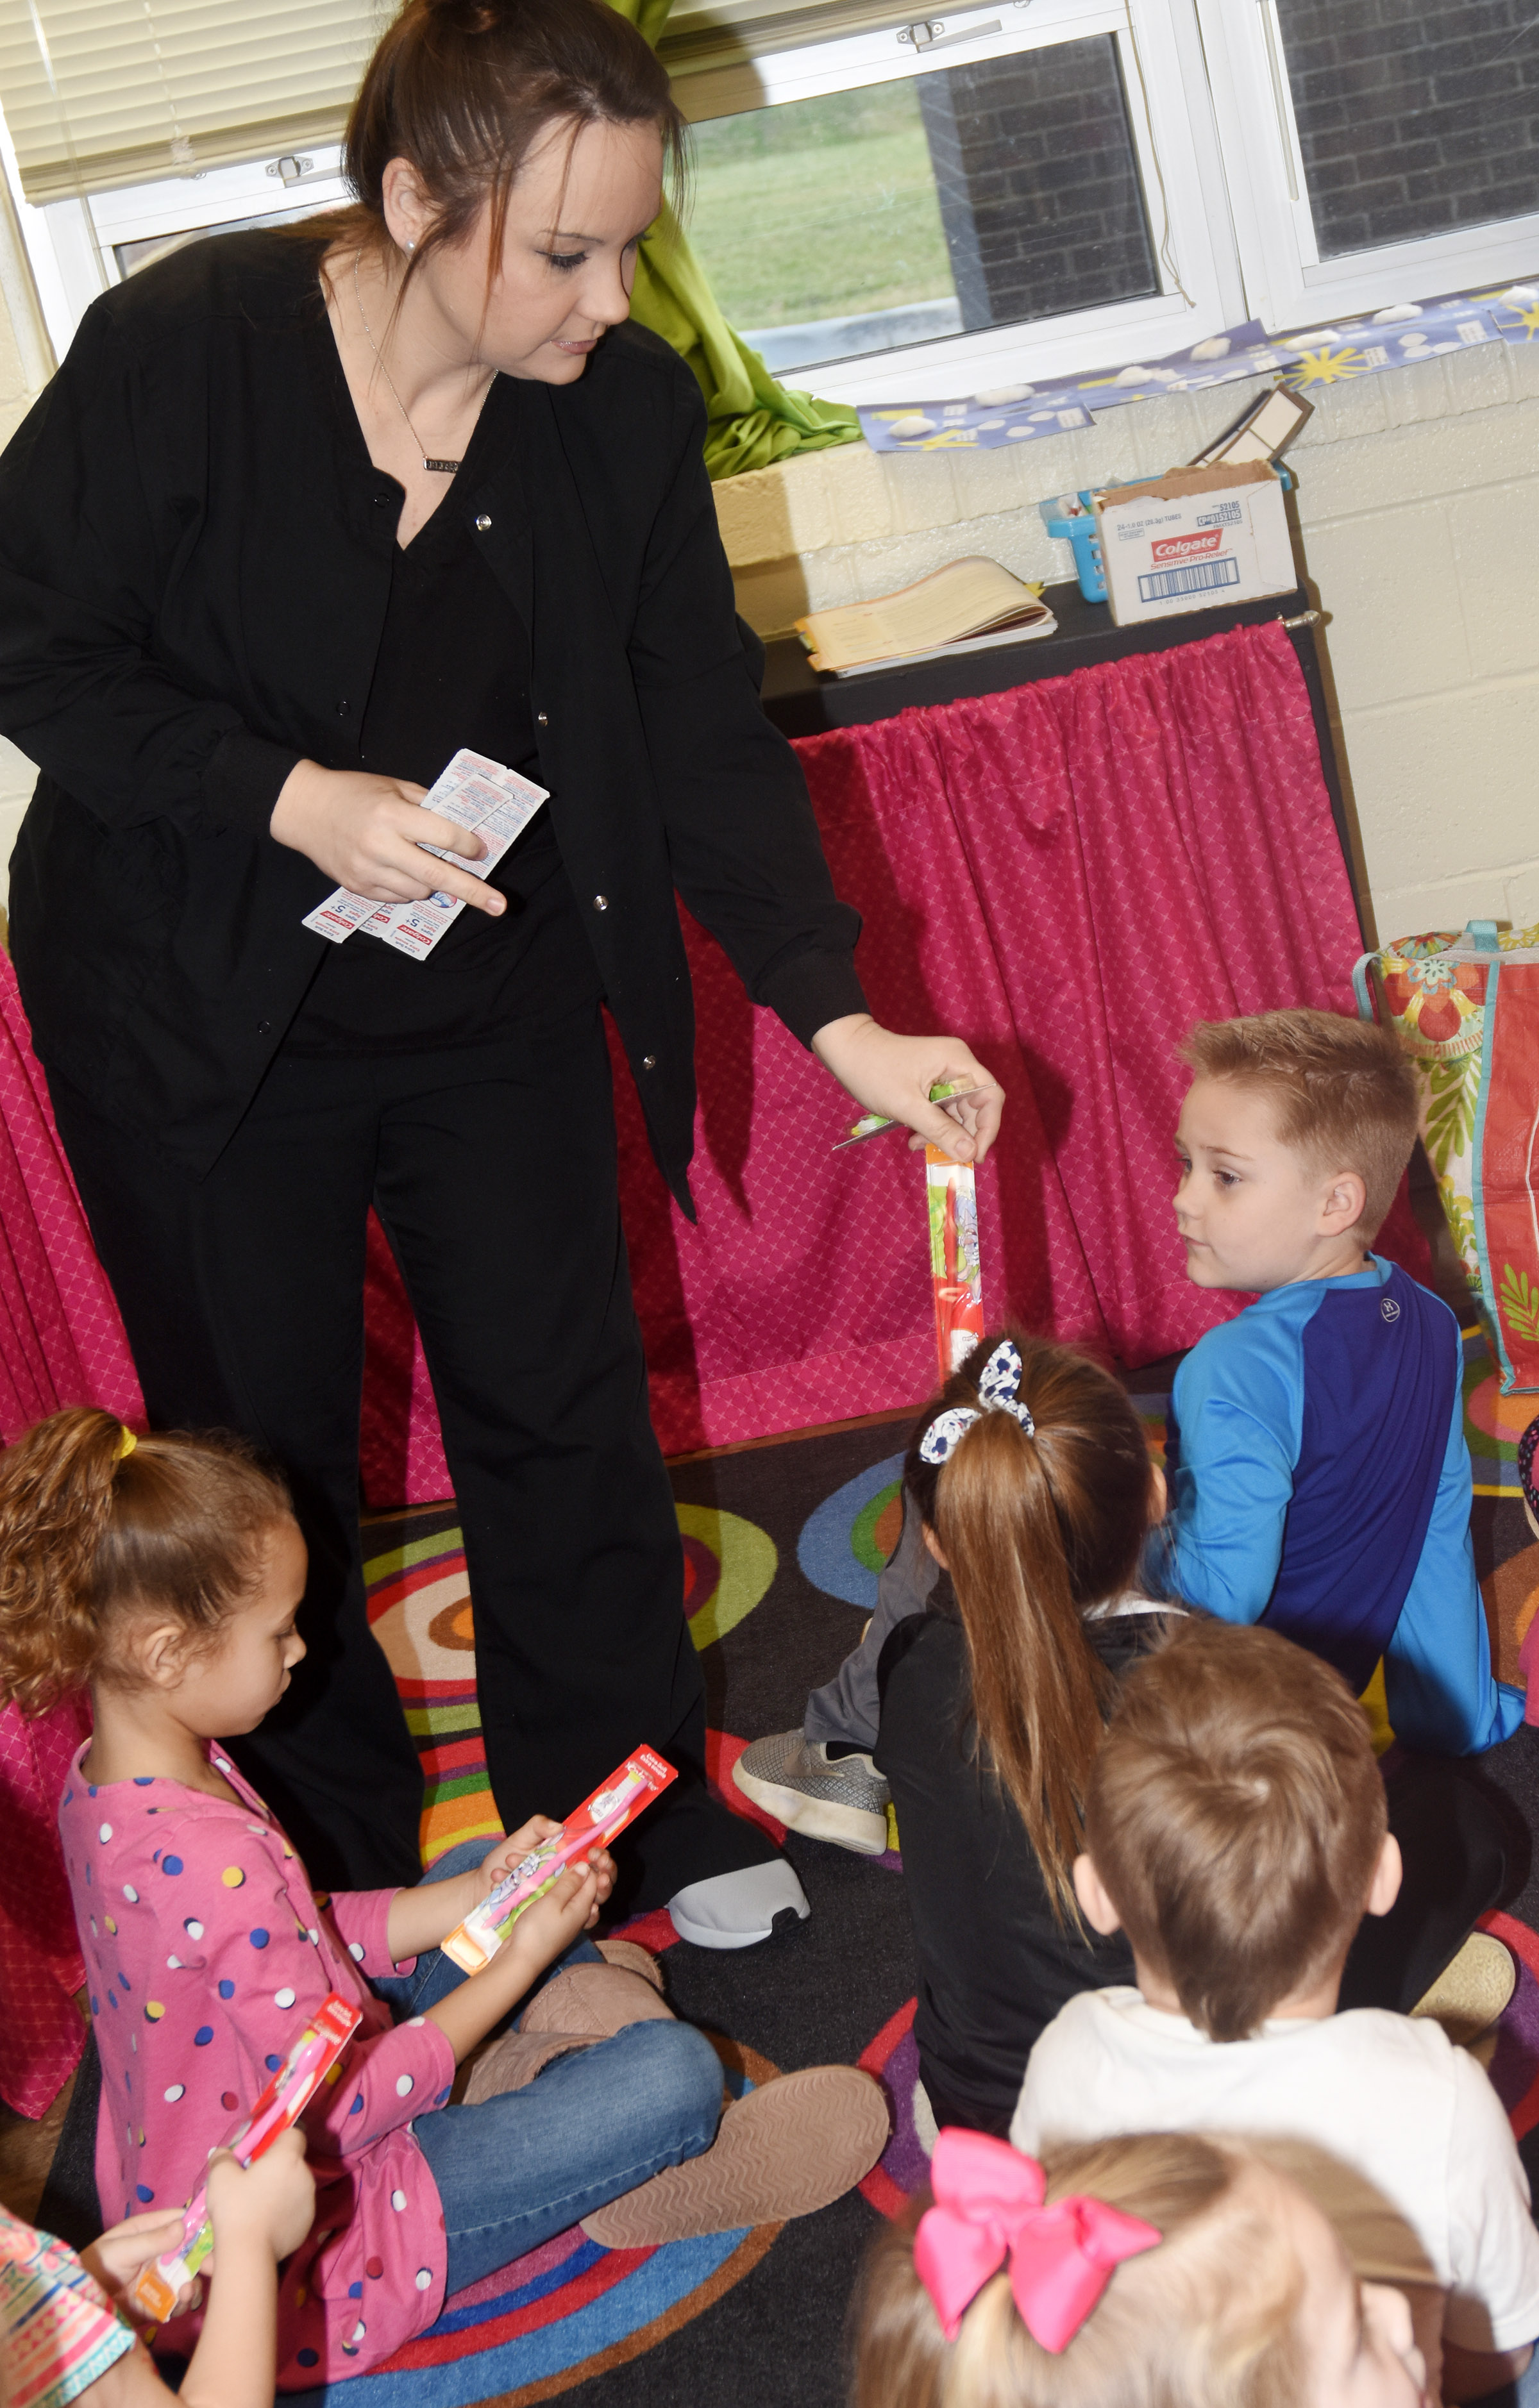 Dental hygienist Brandie Sharp, who works at Dr. John Smoot's dental office in Campbellsville, gives CES kindergarteners a new toothbrush.